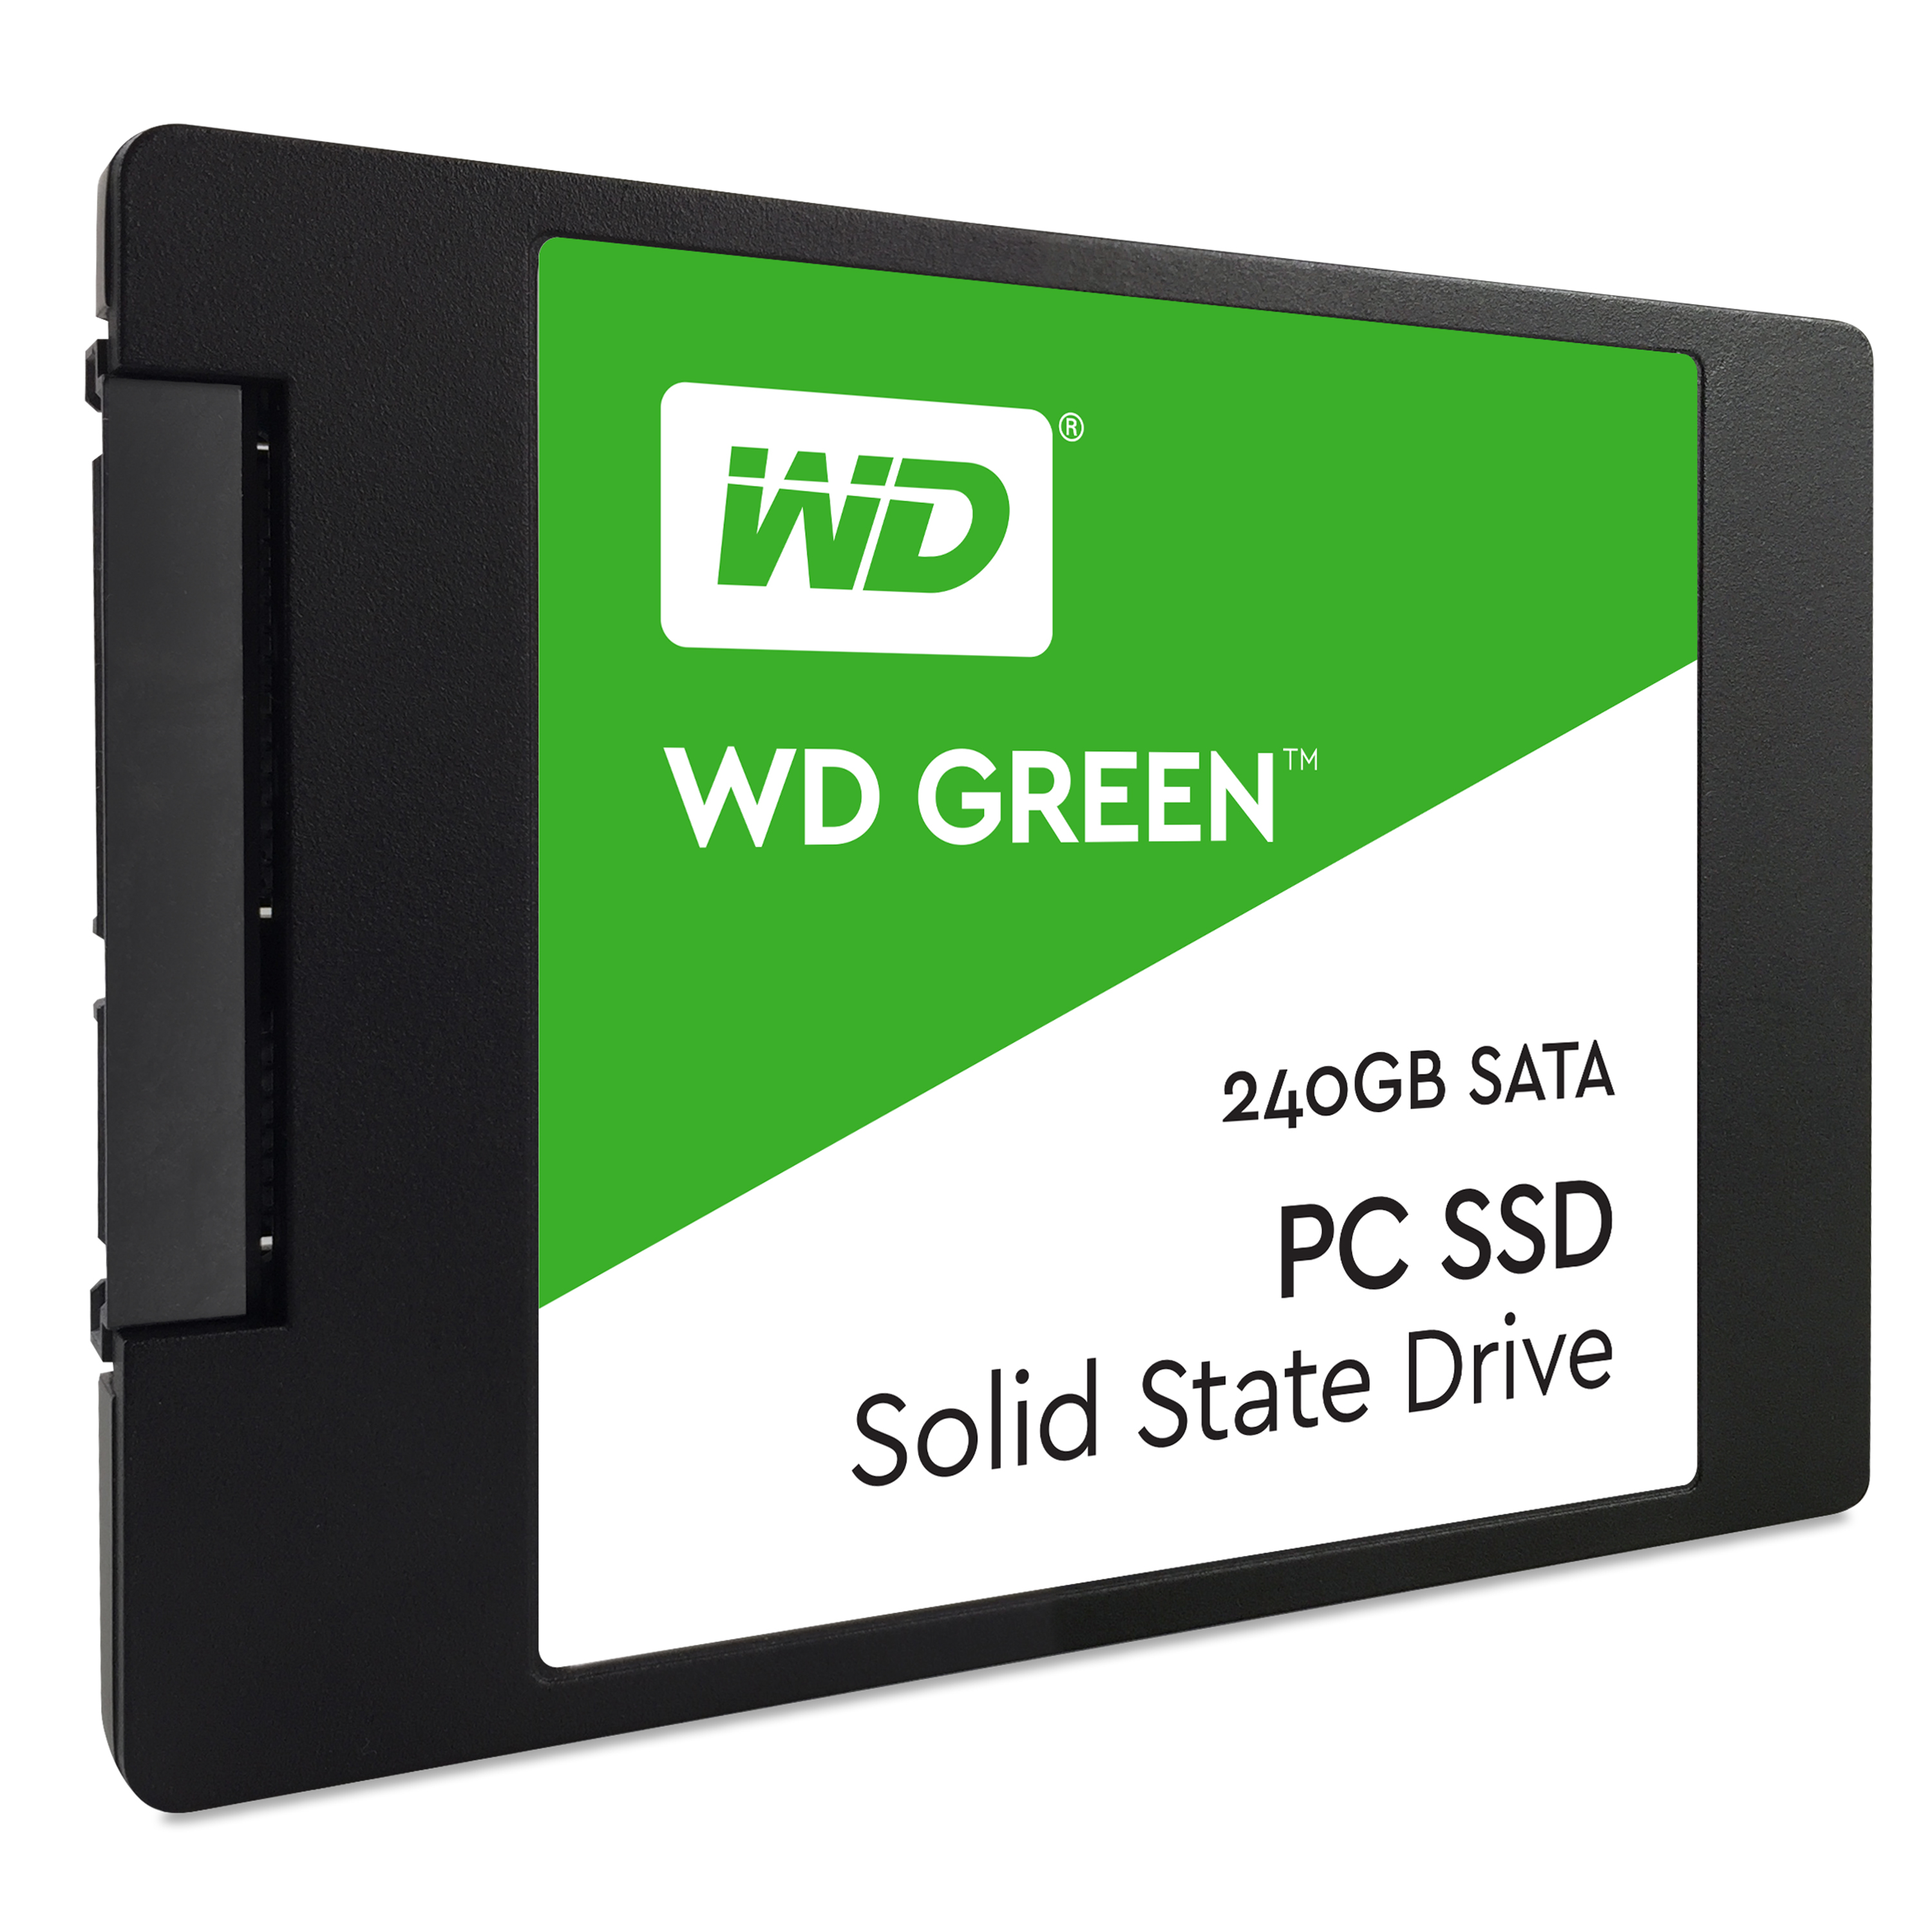 5 Reasons to get a Solid State Drive